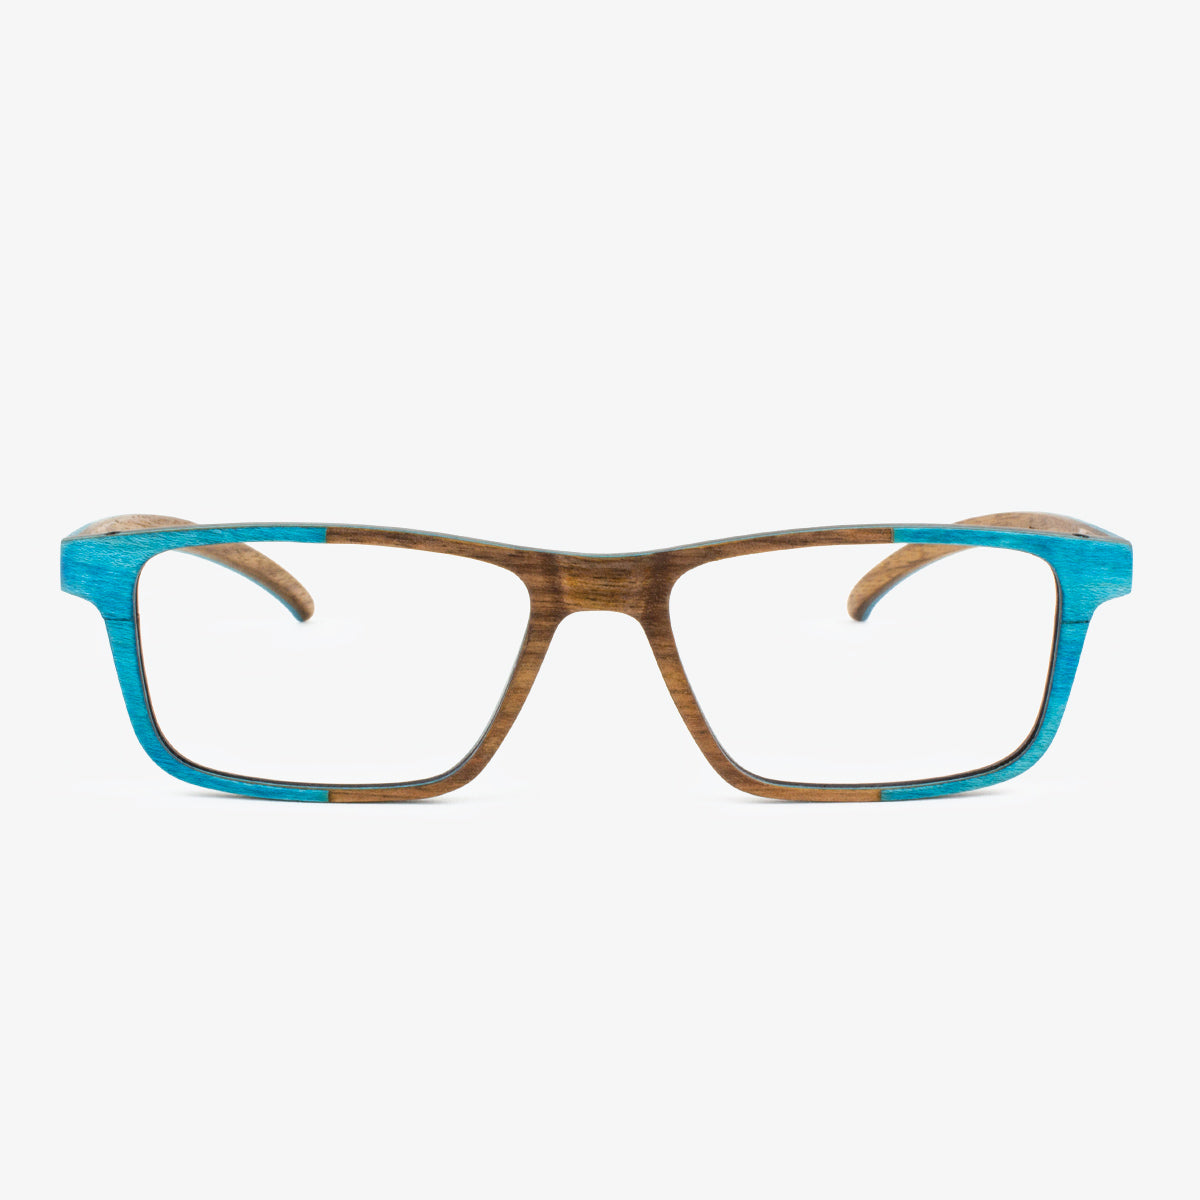 Handcrafted Turquoise and walnut Wooden eyeglass frames